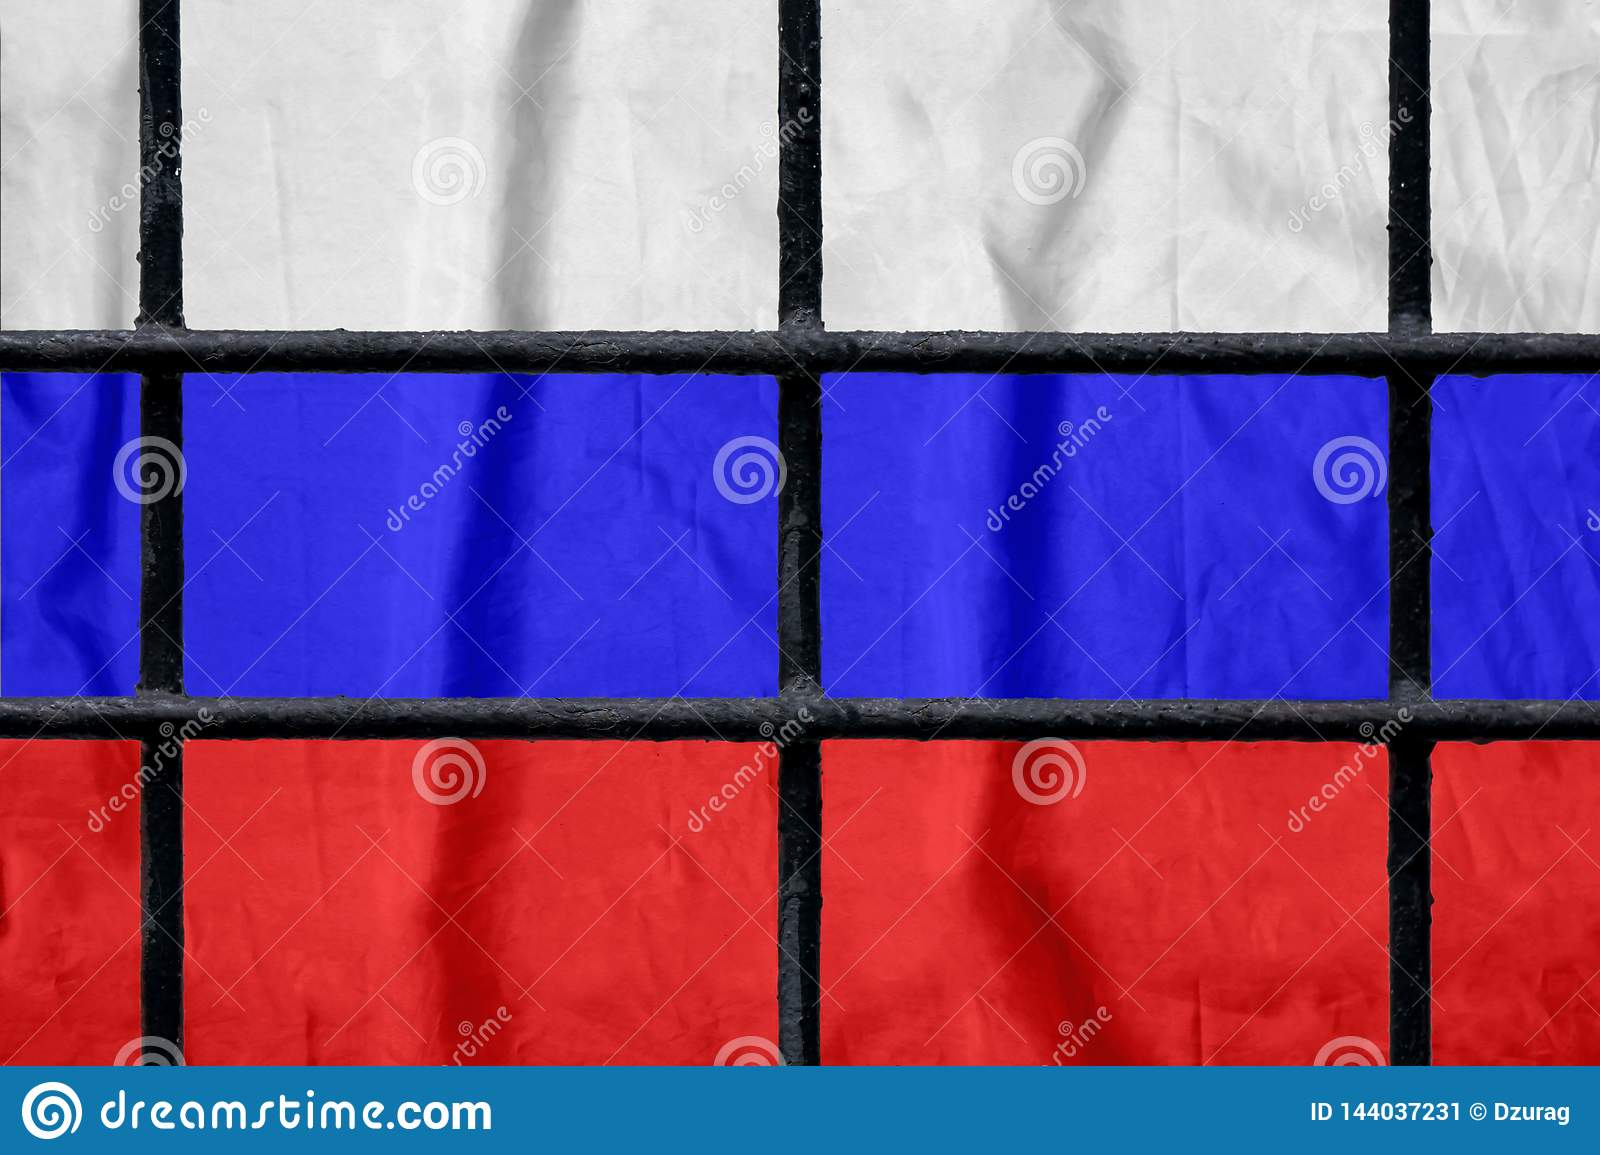 Russian flag behind black metal prison bars